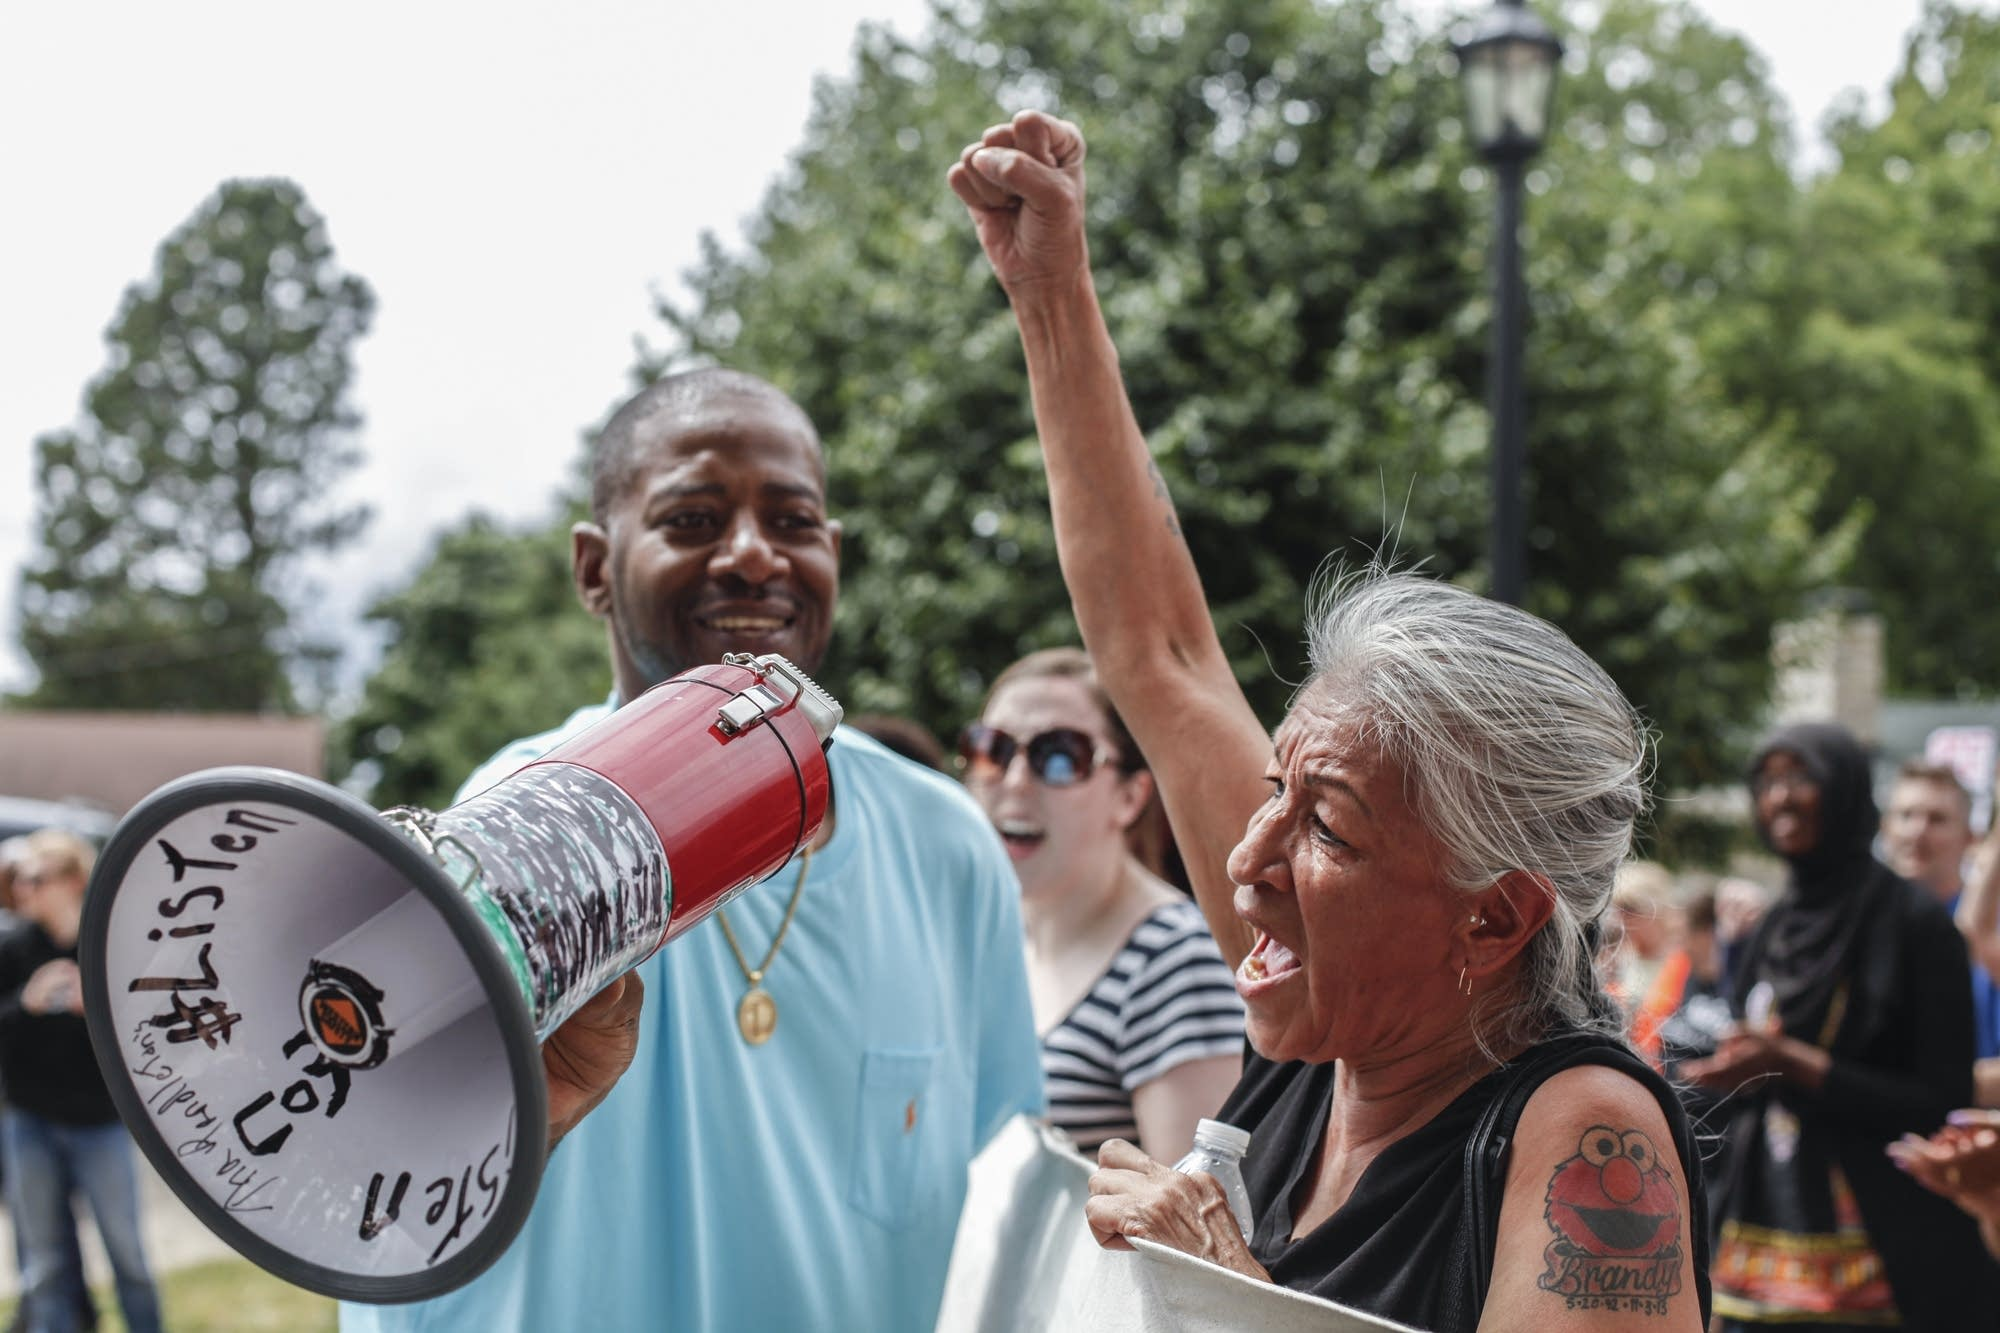 John Thompson passes the megaphone to other protesters.